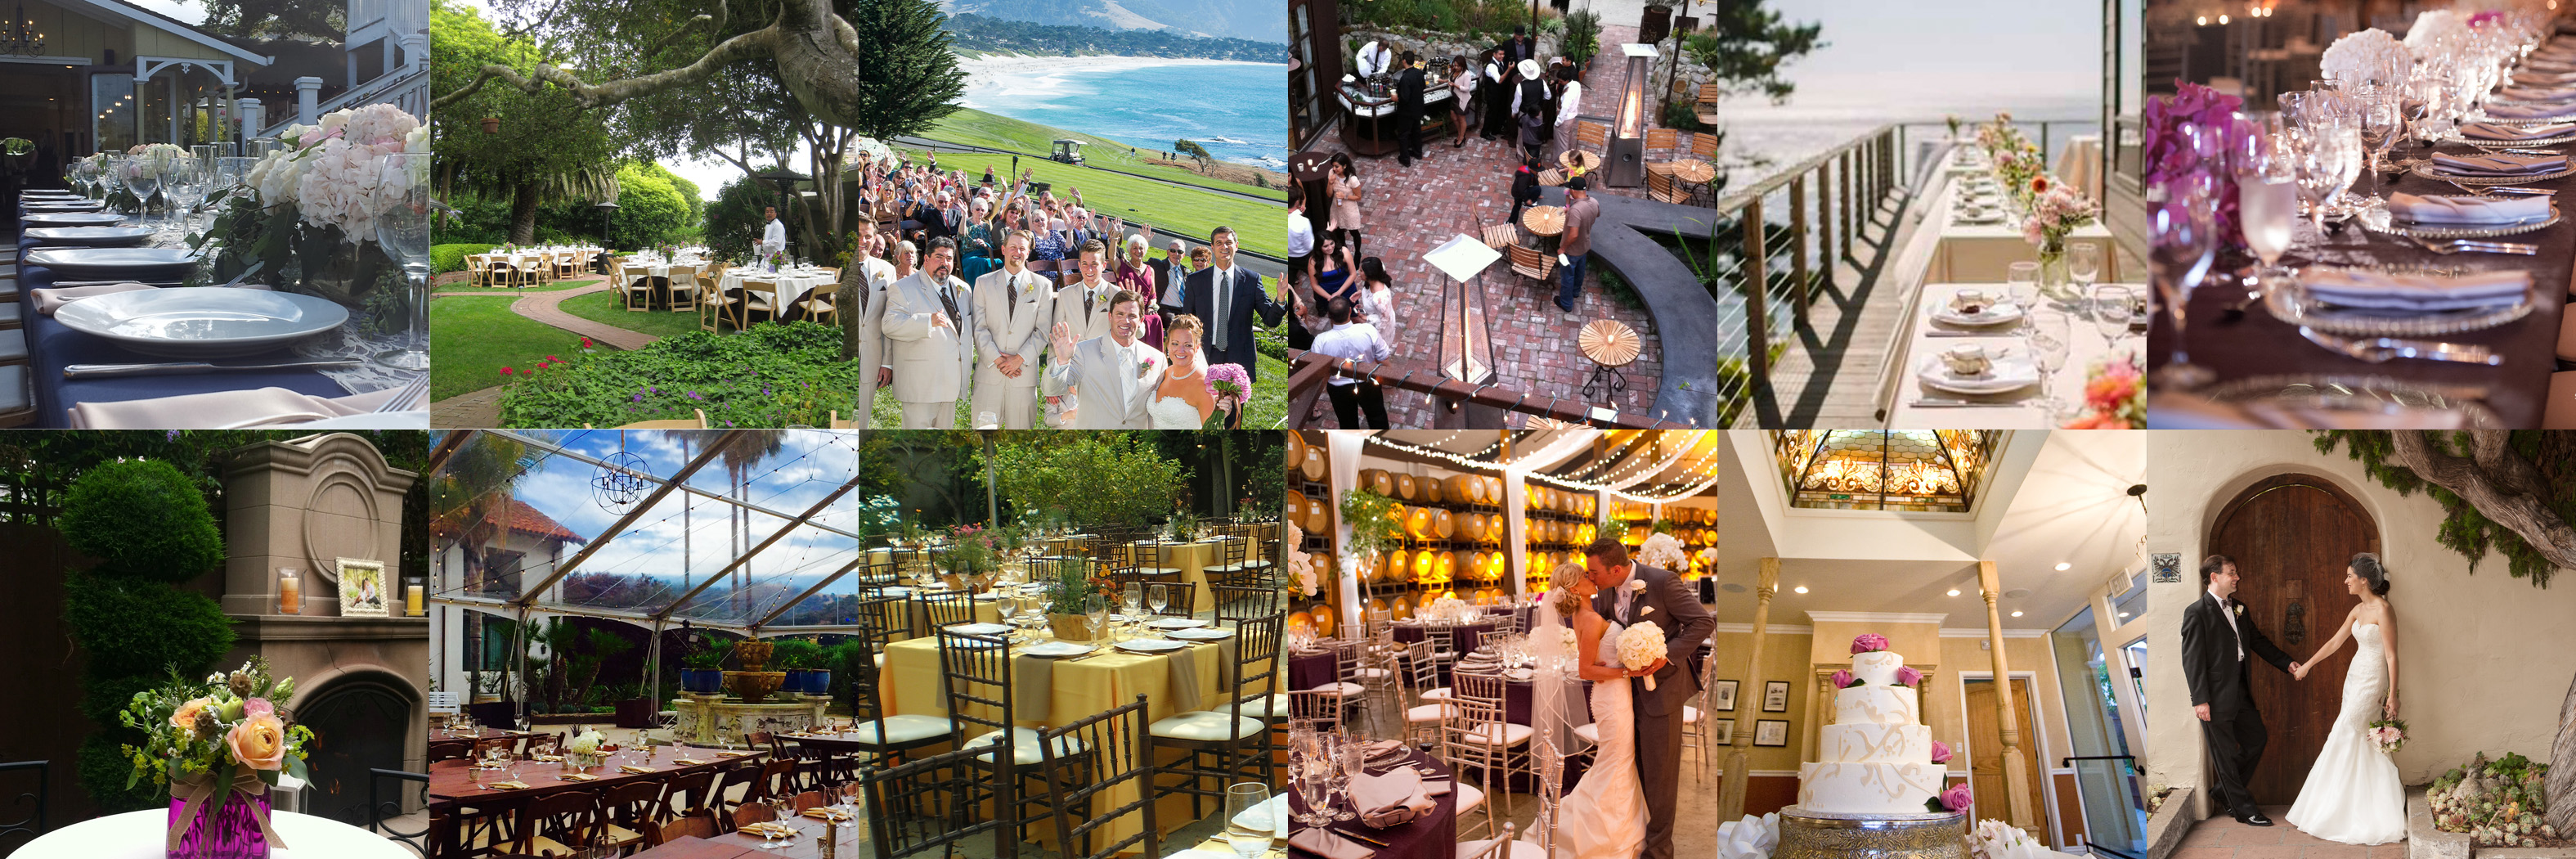 Classic Catering Venues